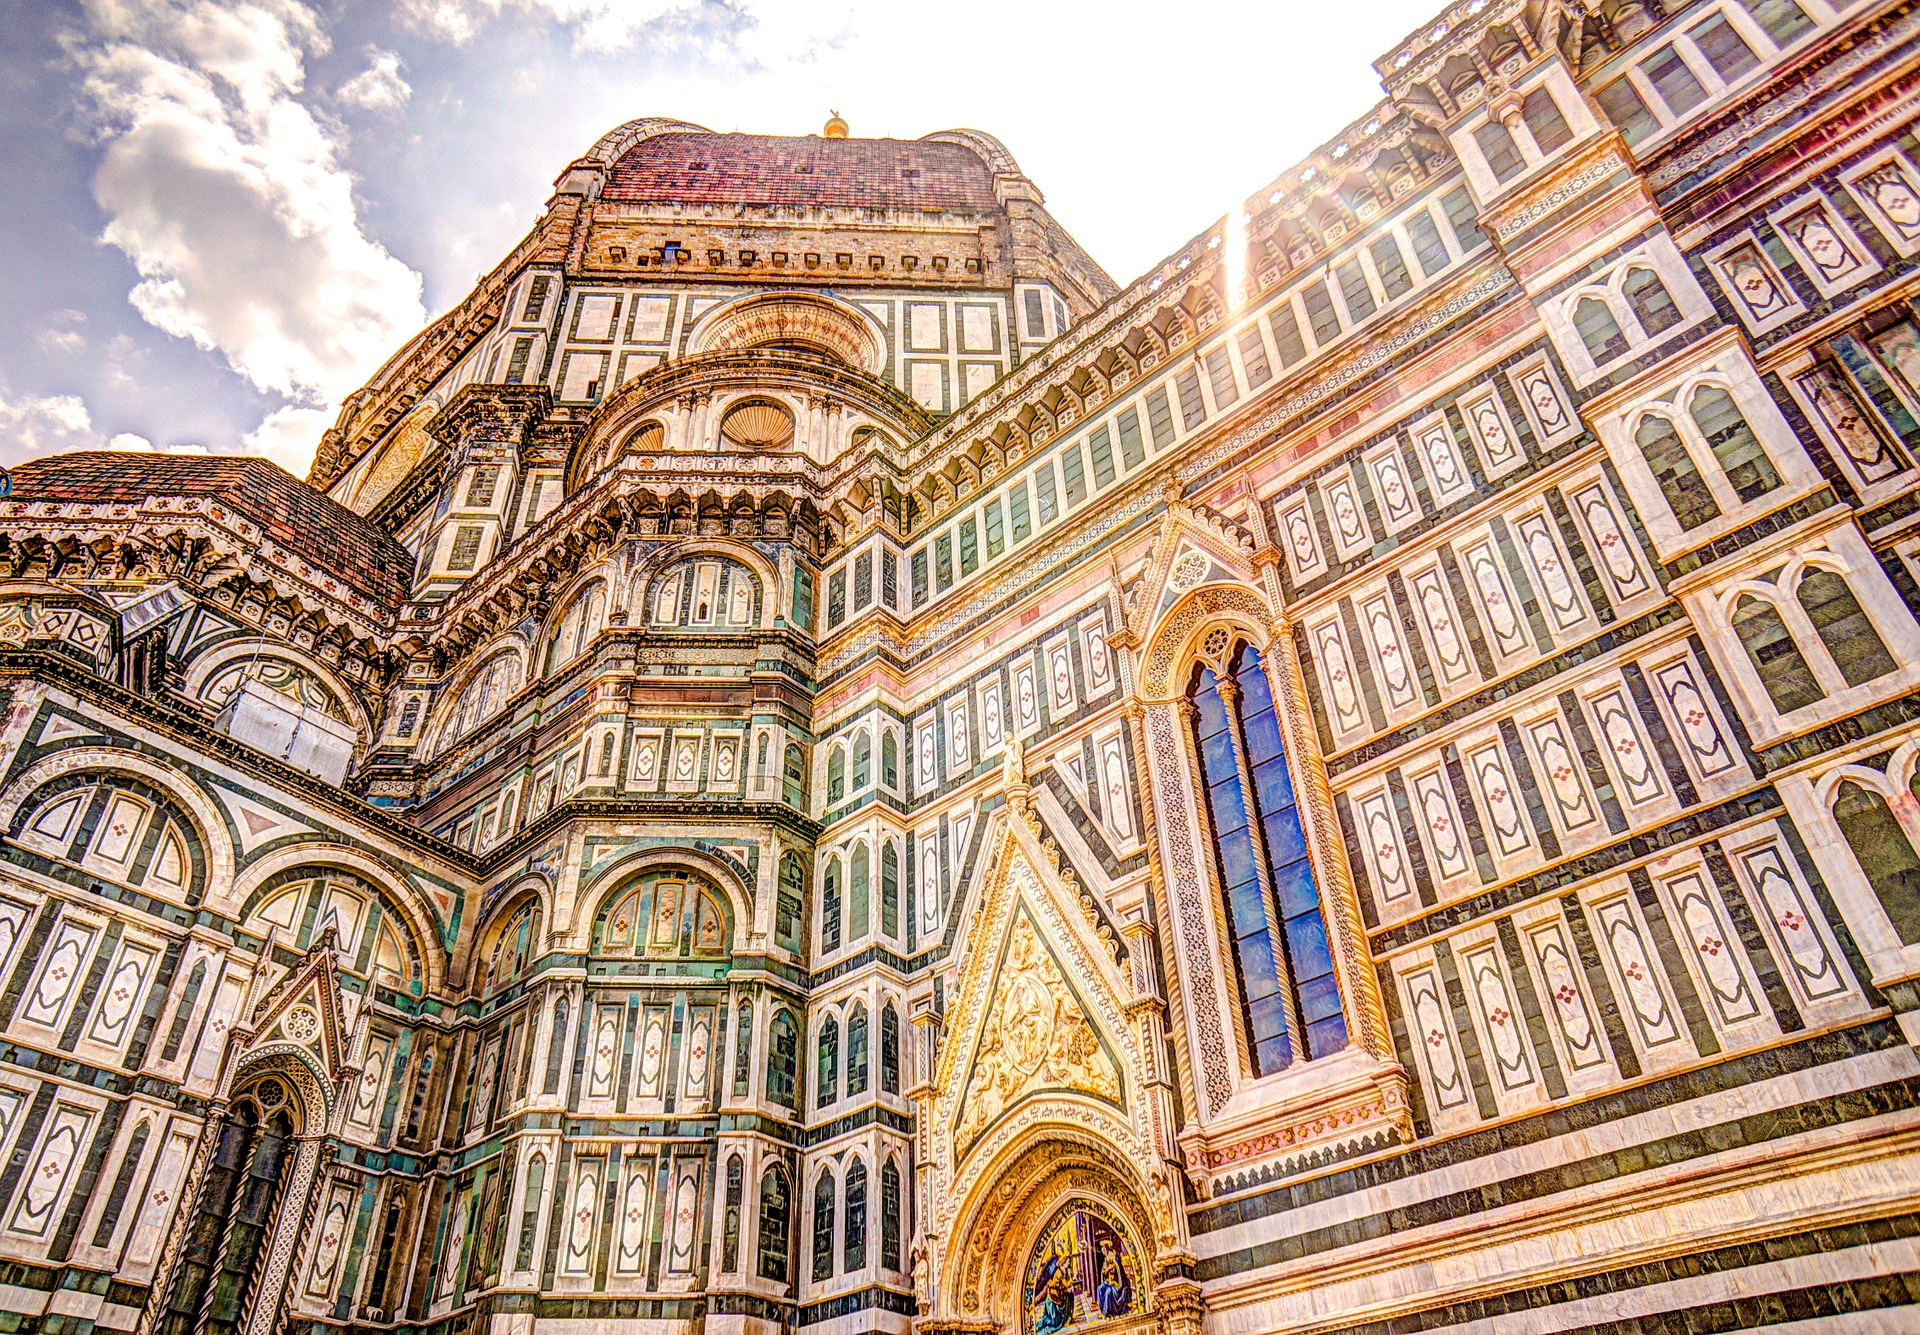 Florence Cathedral (The Cattedrale di Santa Maria del Fiore), Italy